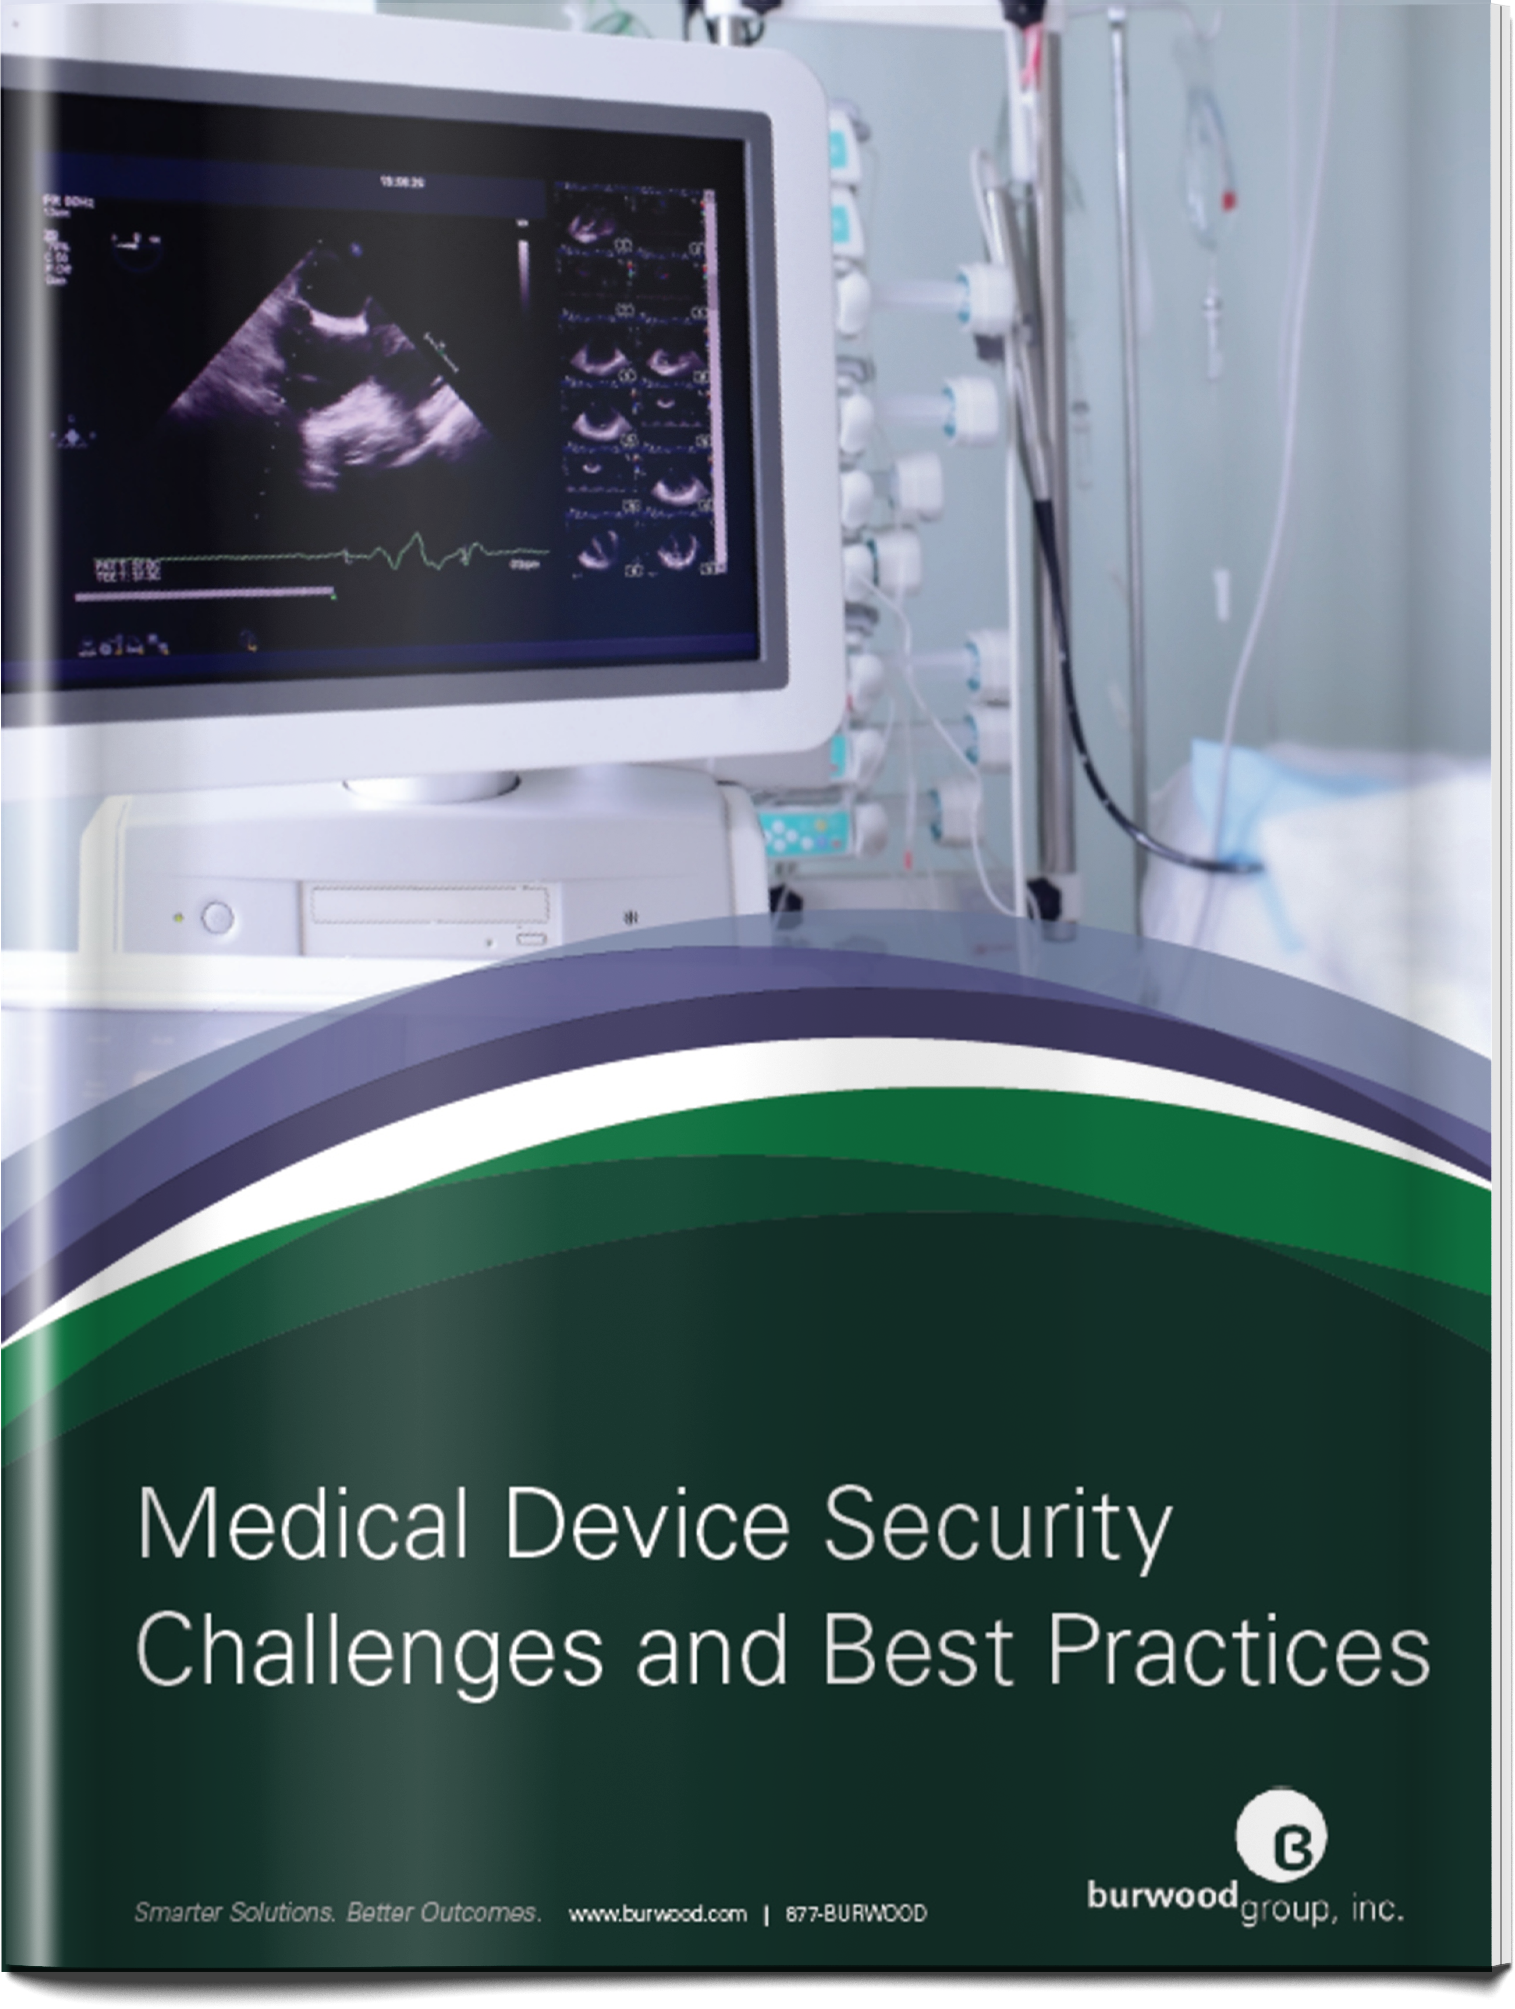 Medical Device Security Challenges and Best Practices - How to develop a comprehensive medical device security program that addresses vulnerabilities, prevents breaches, and safeguards patient information.Download The Guide